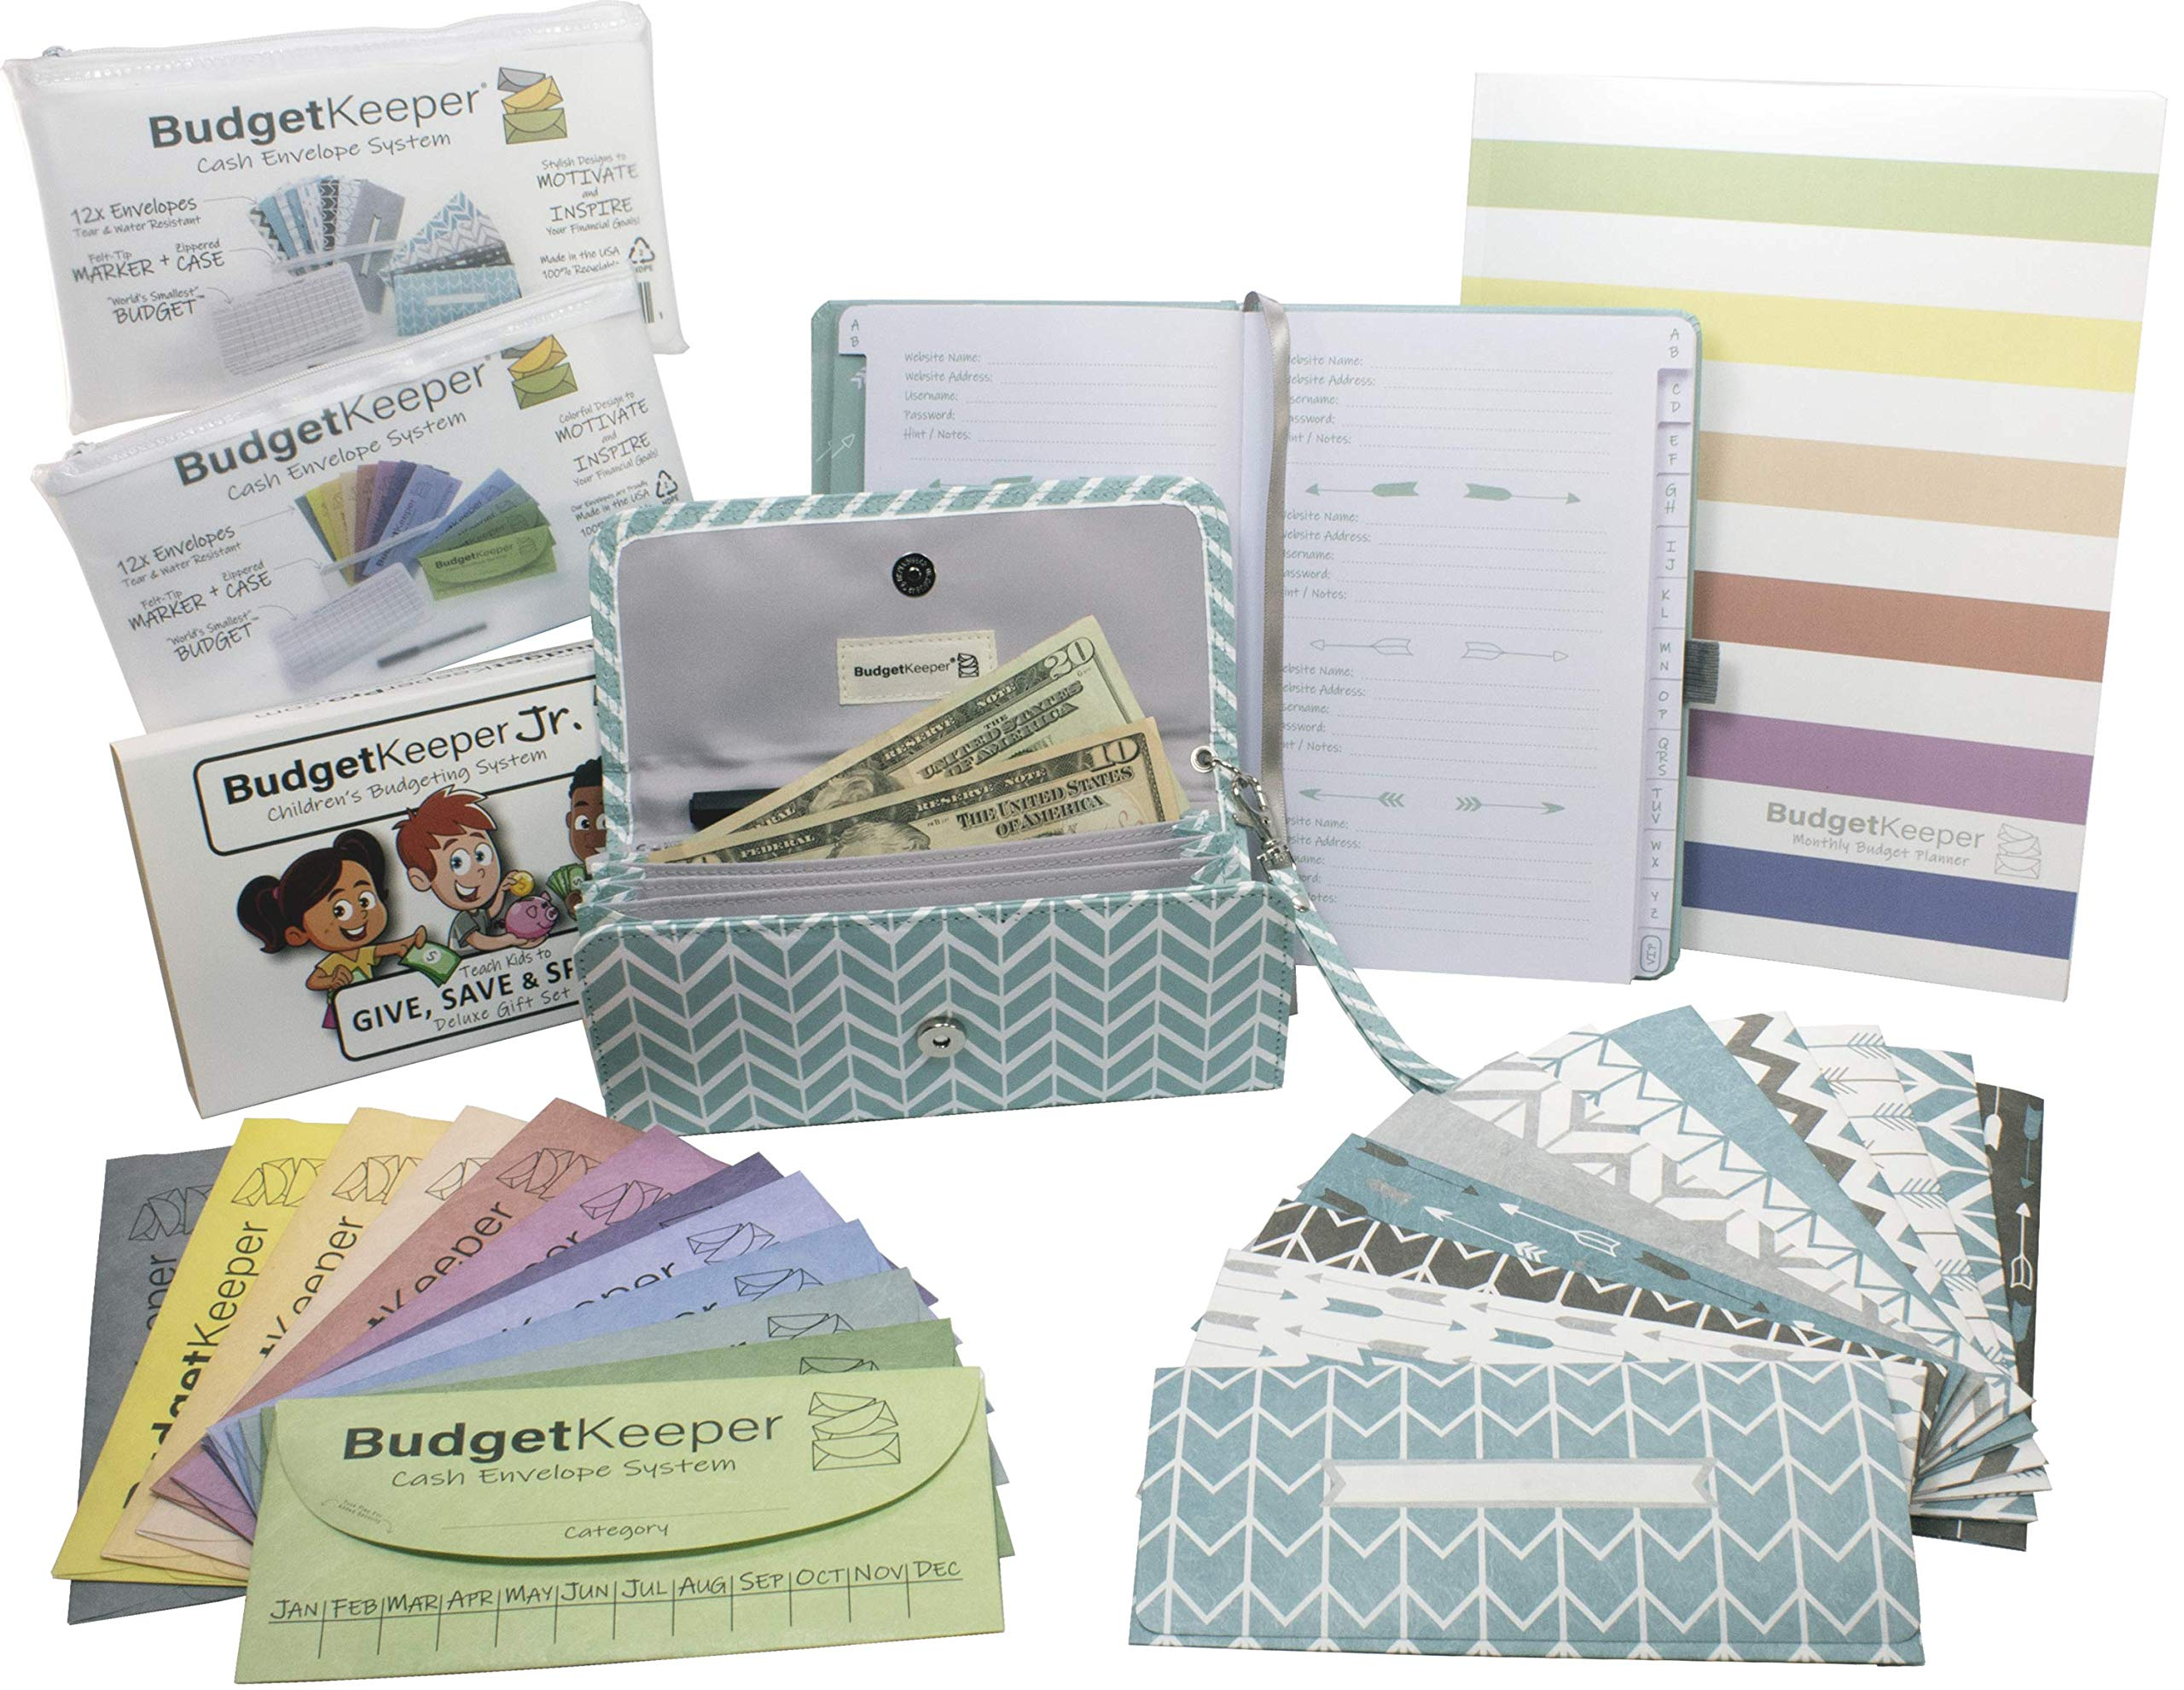 Budget Keeper Deluxe Cash Envelopes Family Pack-2 Cash Envelope System-Kids Money Pouches-Women's Wallet-Budget Planner-Password Journal by Budget Keeper